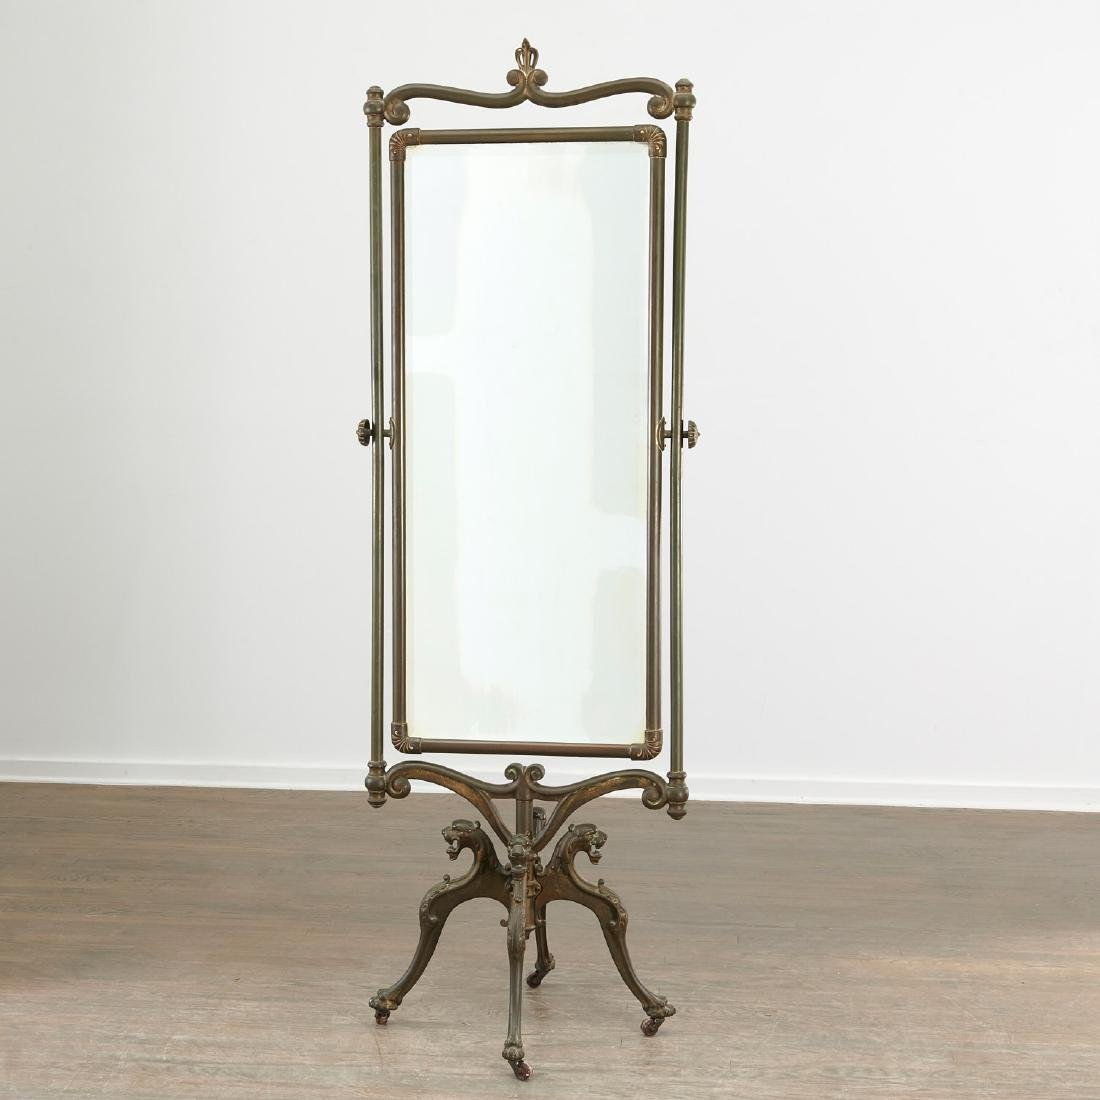 Art Nouveau brass cheval mirror